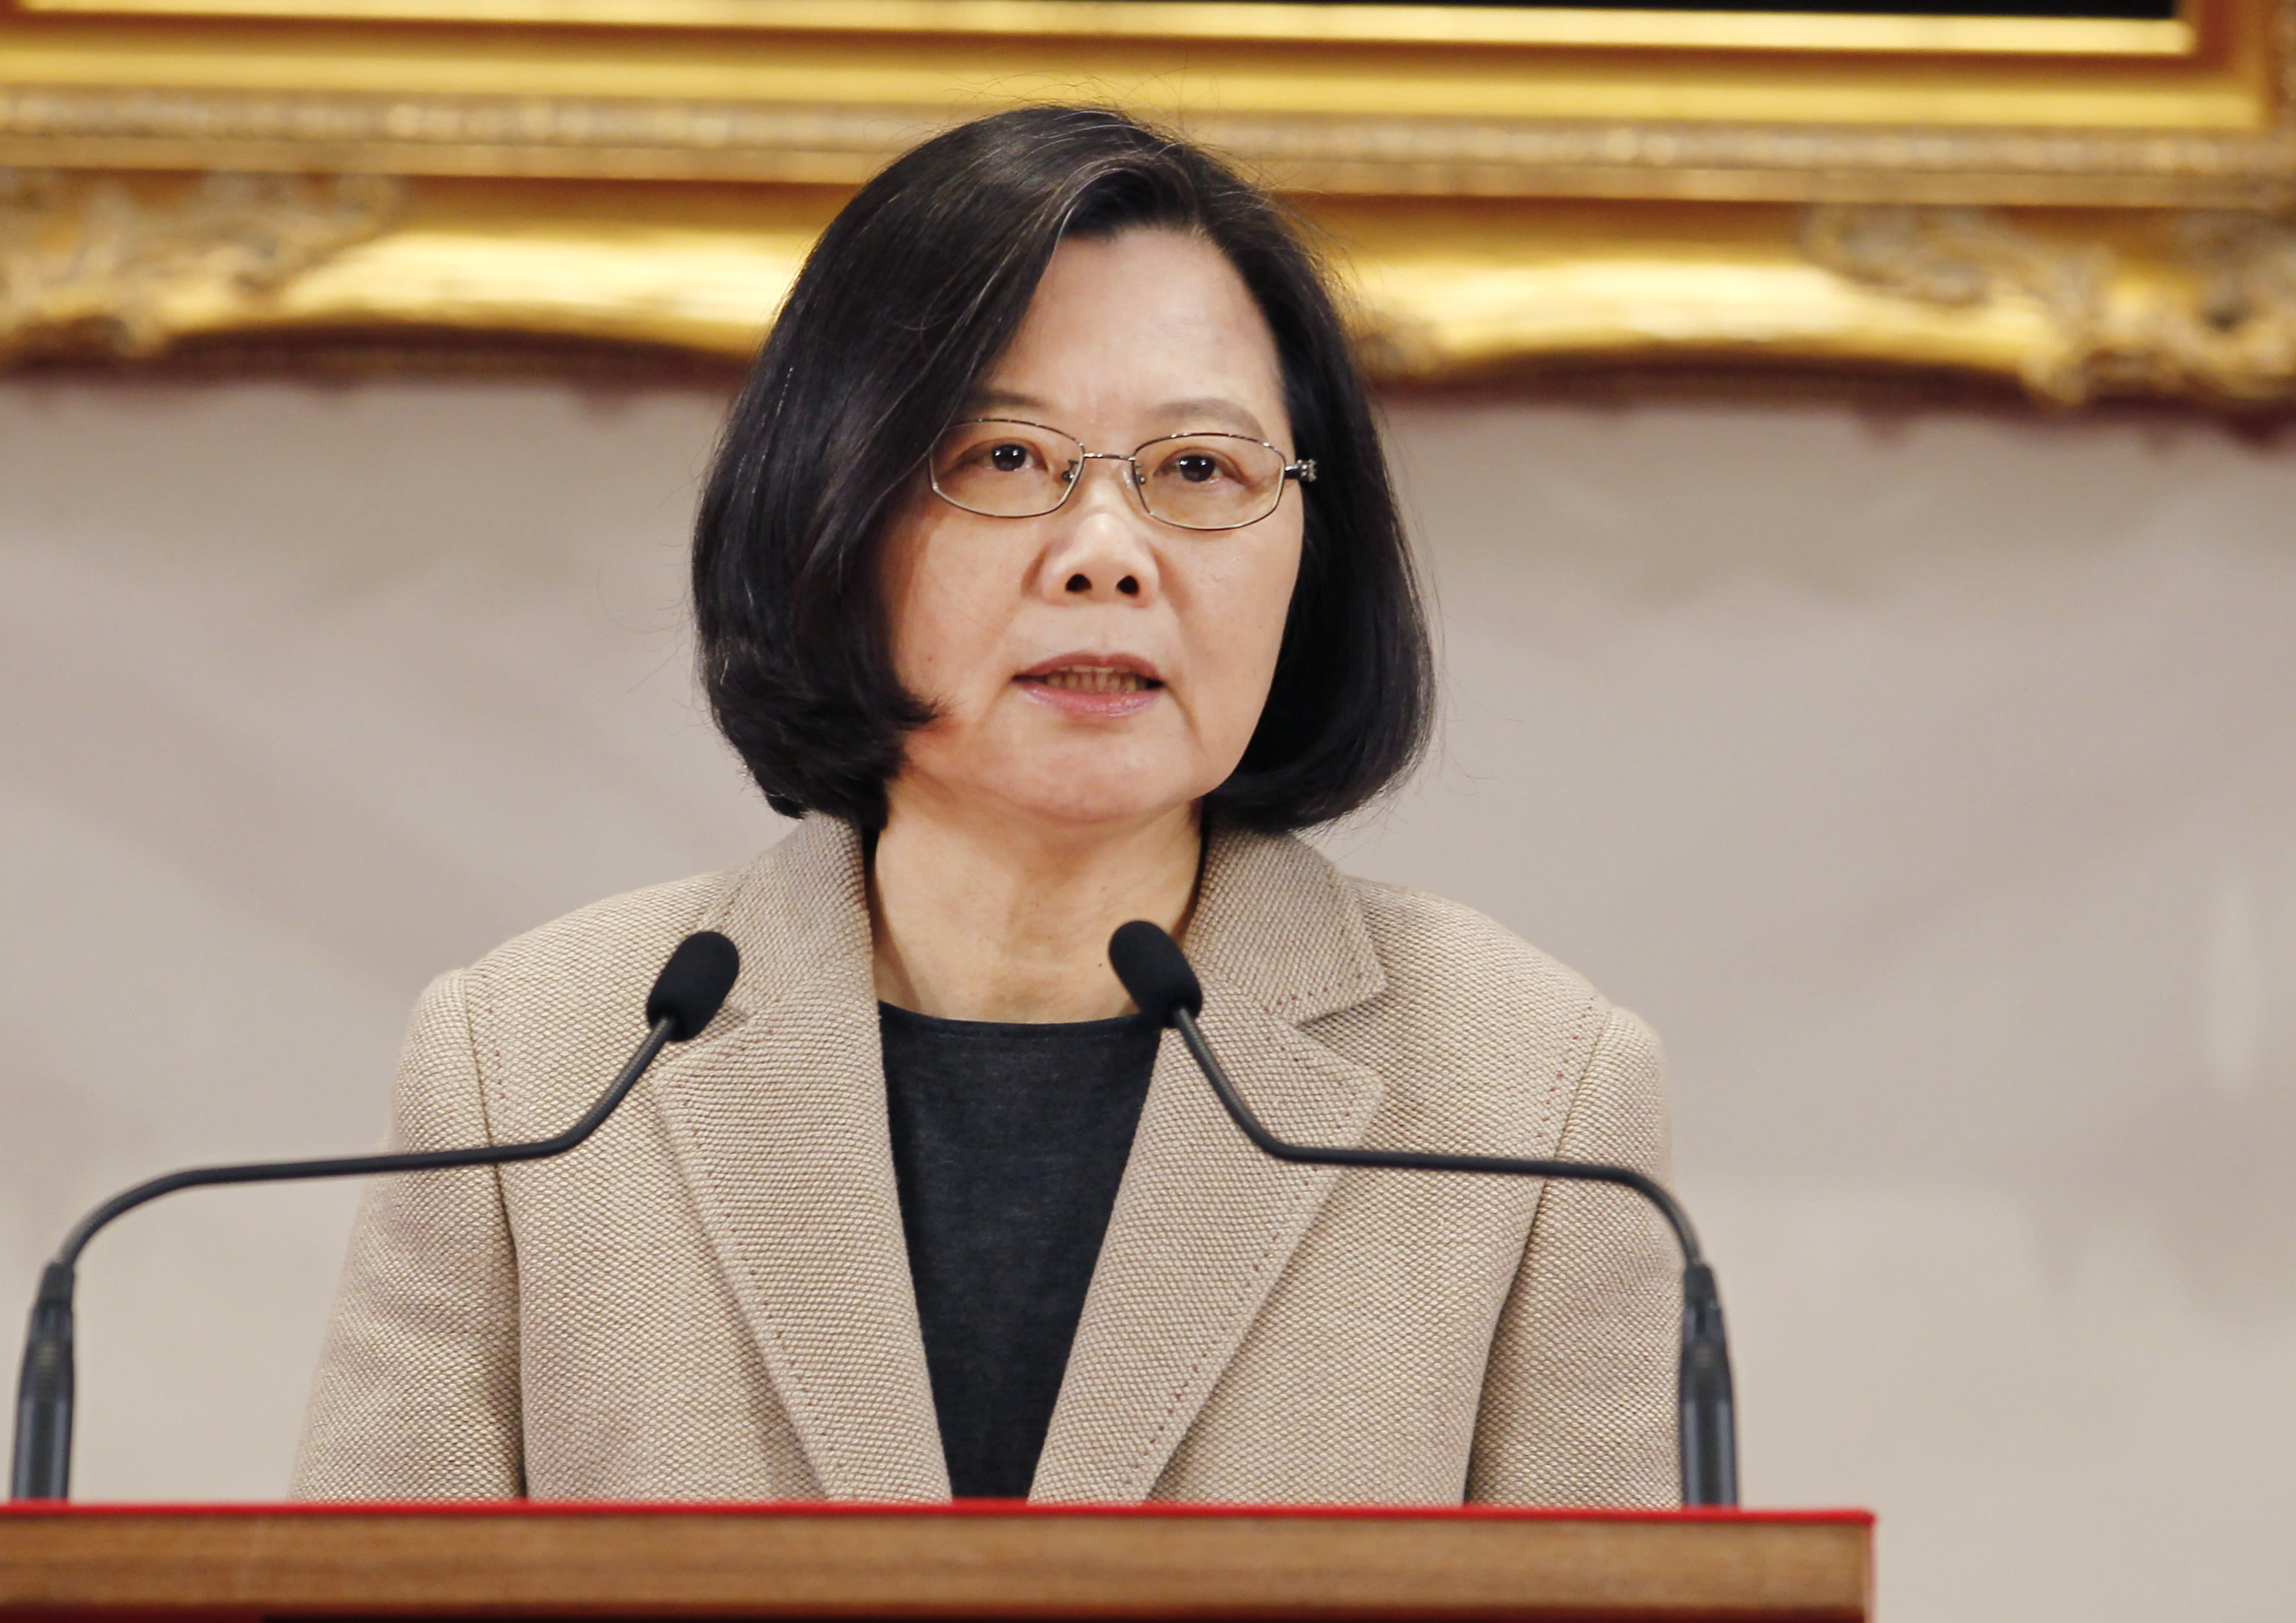 """FILE - In this Jan. 1, 2019, file photo, Taiwanese President Tsai Ing-wen delivers a speech during the New Year press conference in Taipei, Taiwan. China says attempts by Taiwan's government to block its goal of bringing the self-governing island under Beijing's control are like """"stretching out an arm to block a car."""" The new rhetorical broadside was launched late Tuesday, March 12, against Taiwanese President Tsai following her announcement of guidelines to counter China's """"one country, two systems"""" framework for political unification with the island. (AP Photo/Chiang Ying-ying, File)"""